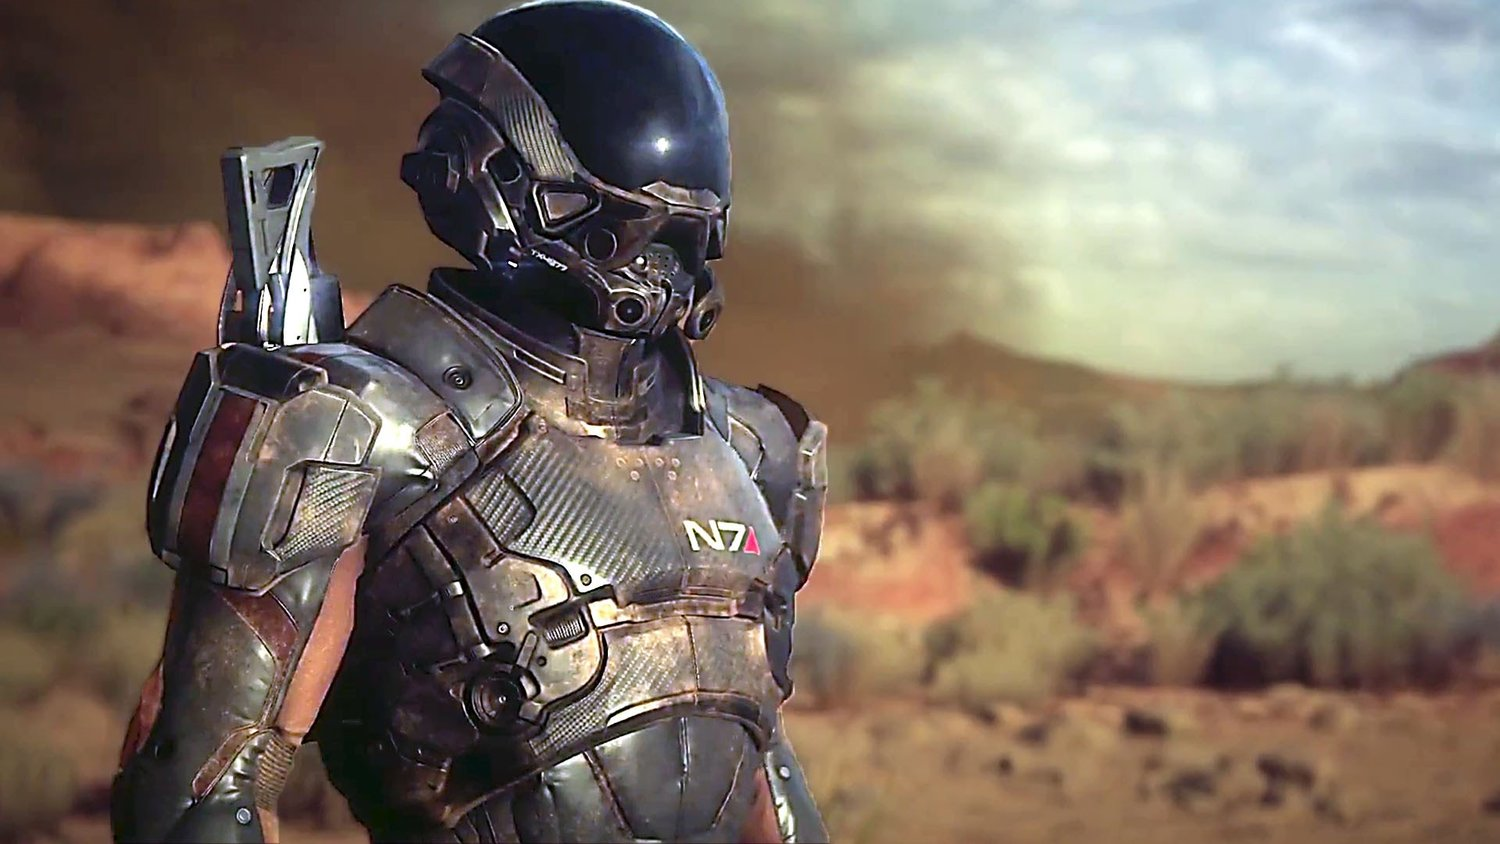 Despite Bad Reviews, MASS EFFECT: ANDROMEDA Is Number 1 in the UK